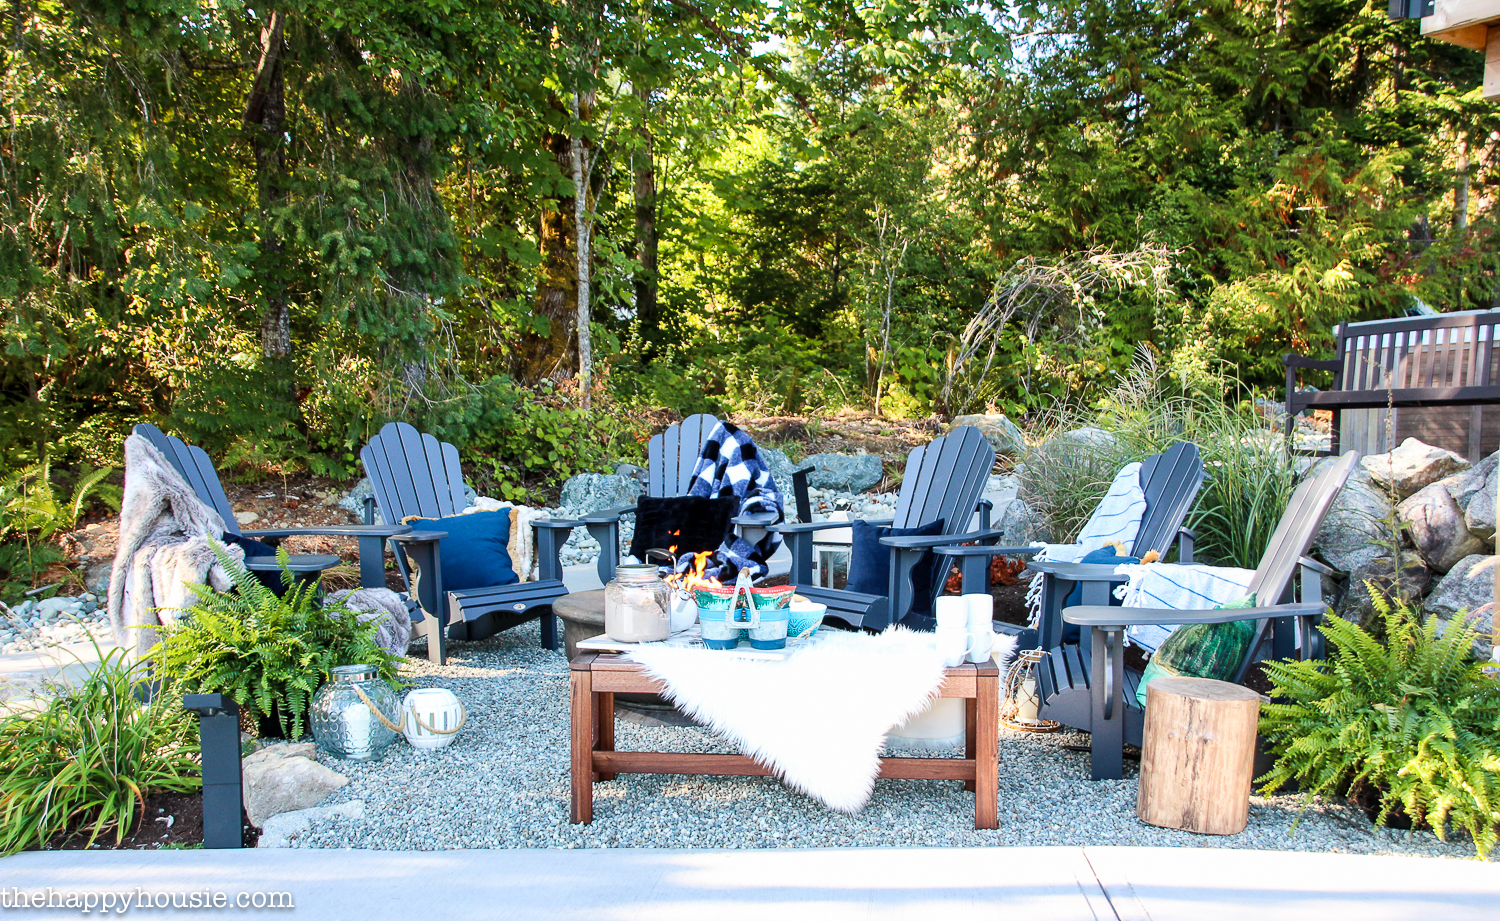 beautiful-outdoor-fire-pit-decor-with-fantastic-super-affordable-finds-from-HomeSense-Canada-7.jpg